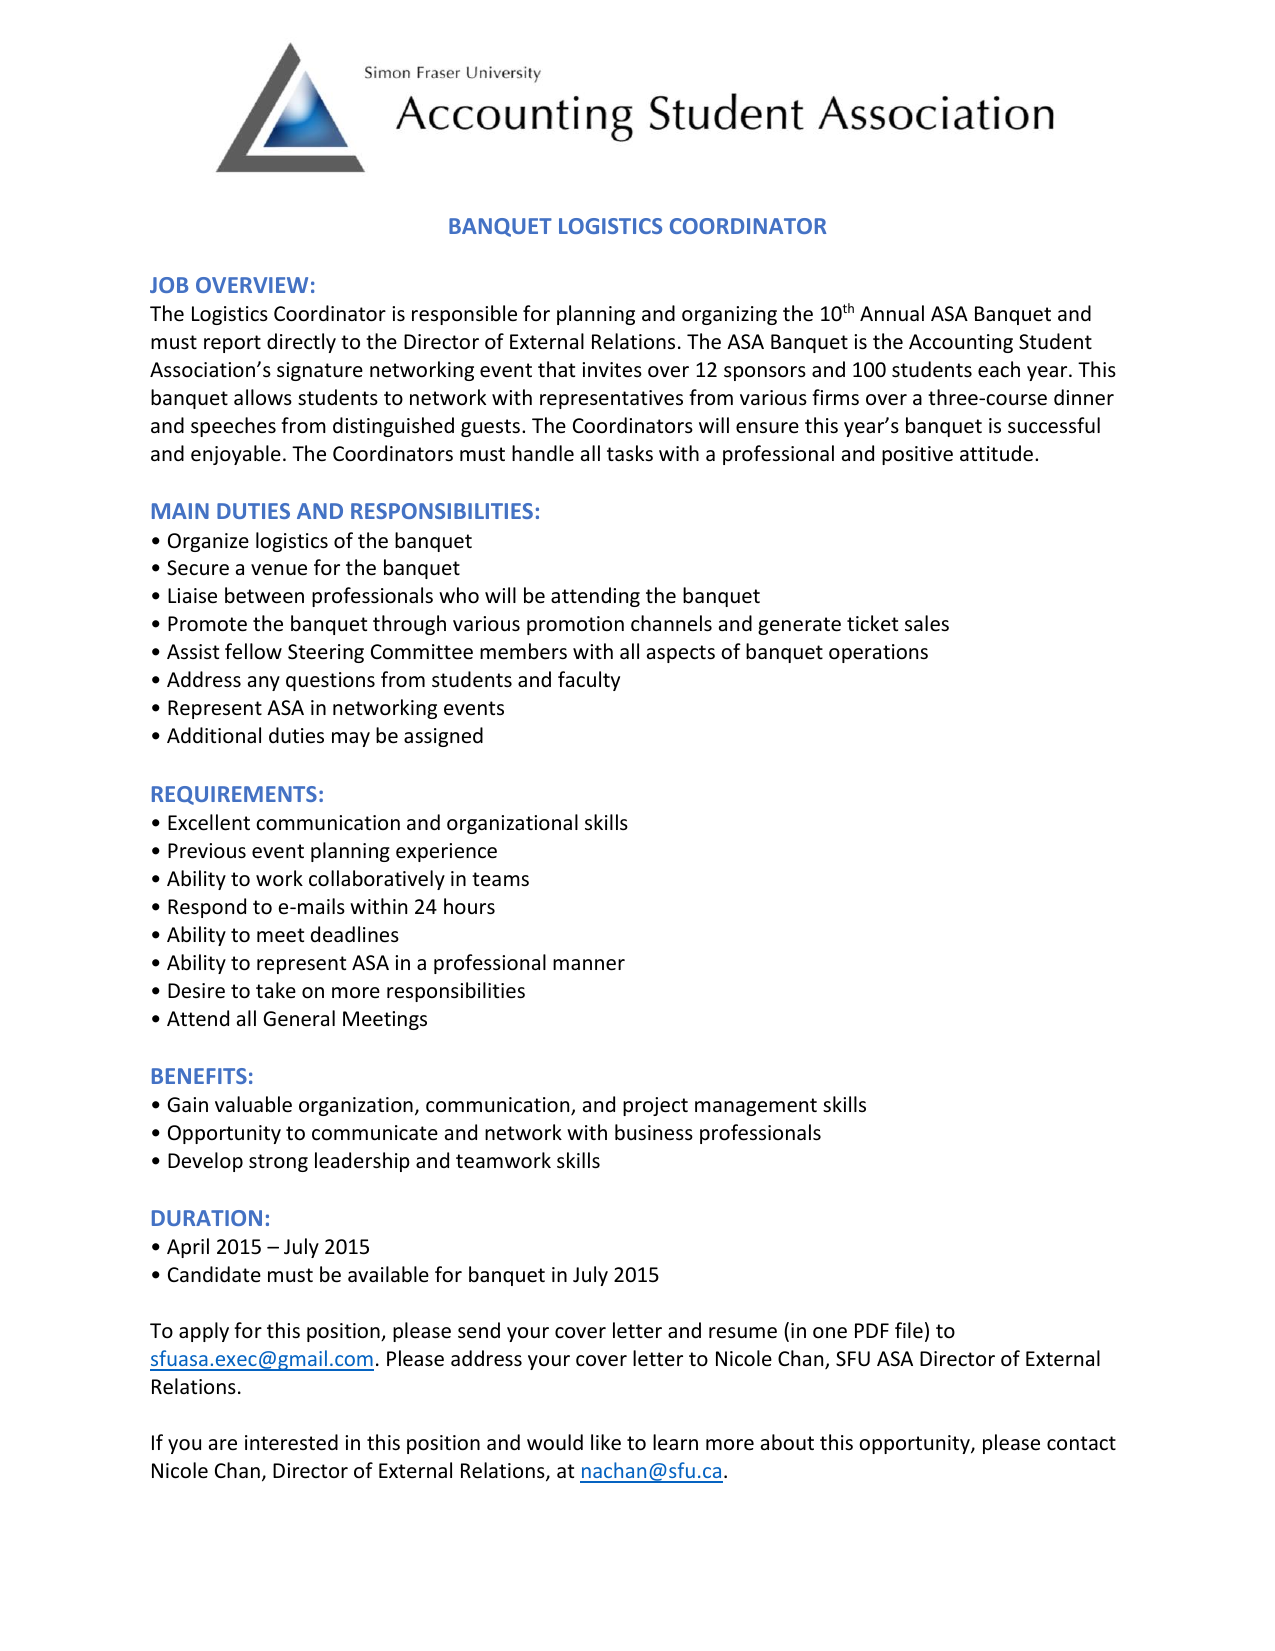 BANQUET LOGISTICS COORDINATOR JOB OVERVIEW: MAIN